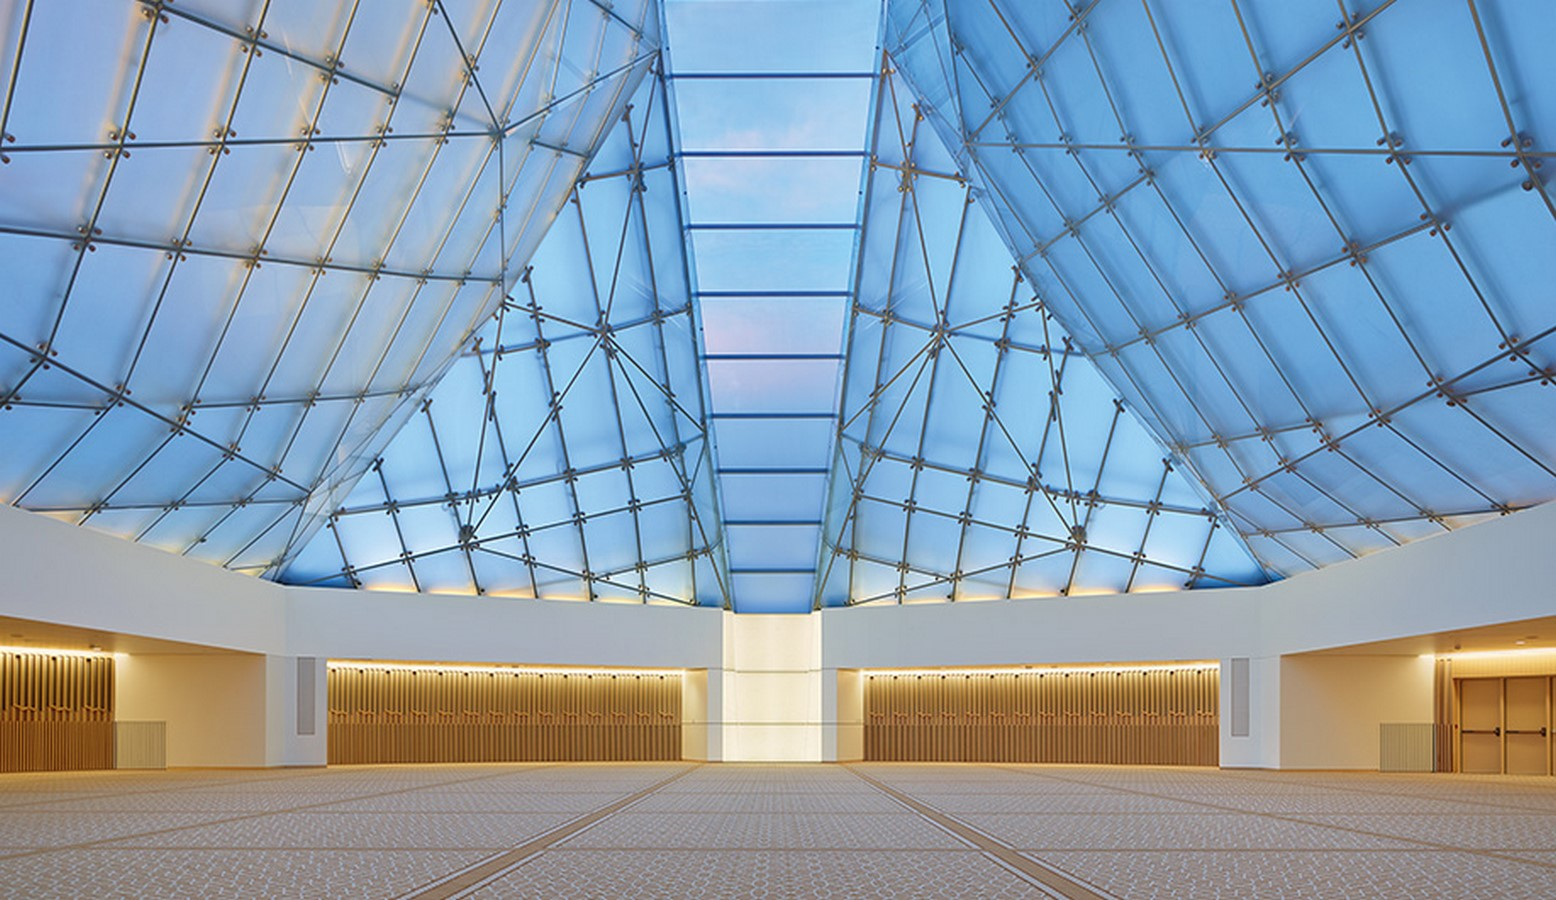 The Ismaili Centre by Charles Correa: Harmonizing Spiritual, Artistic and Natural world - Sheet6